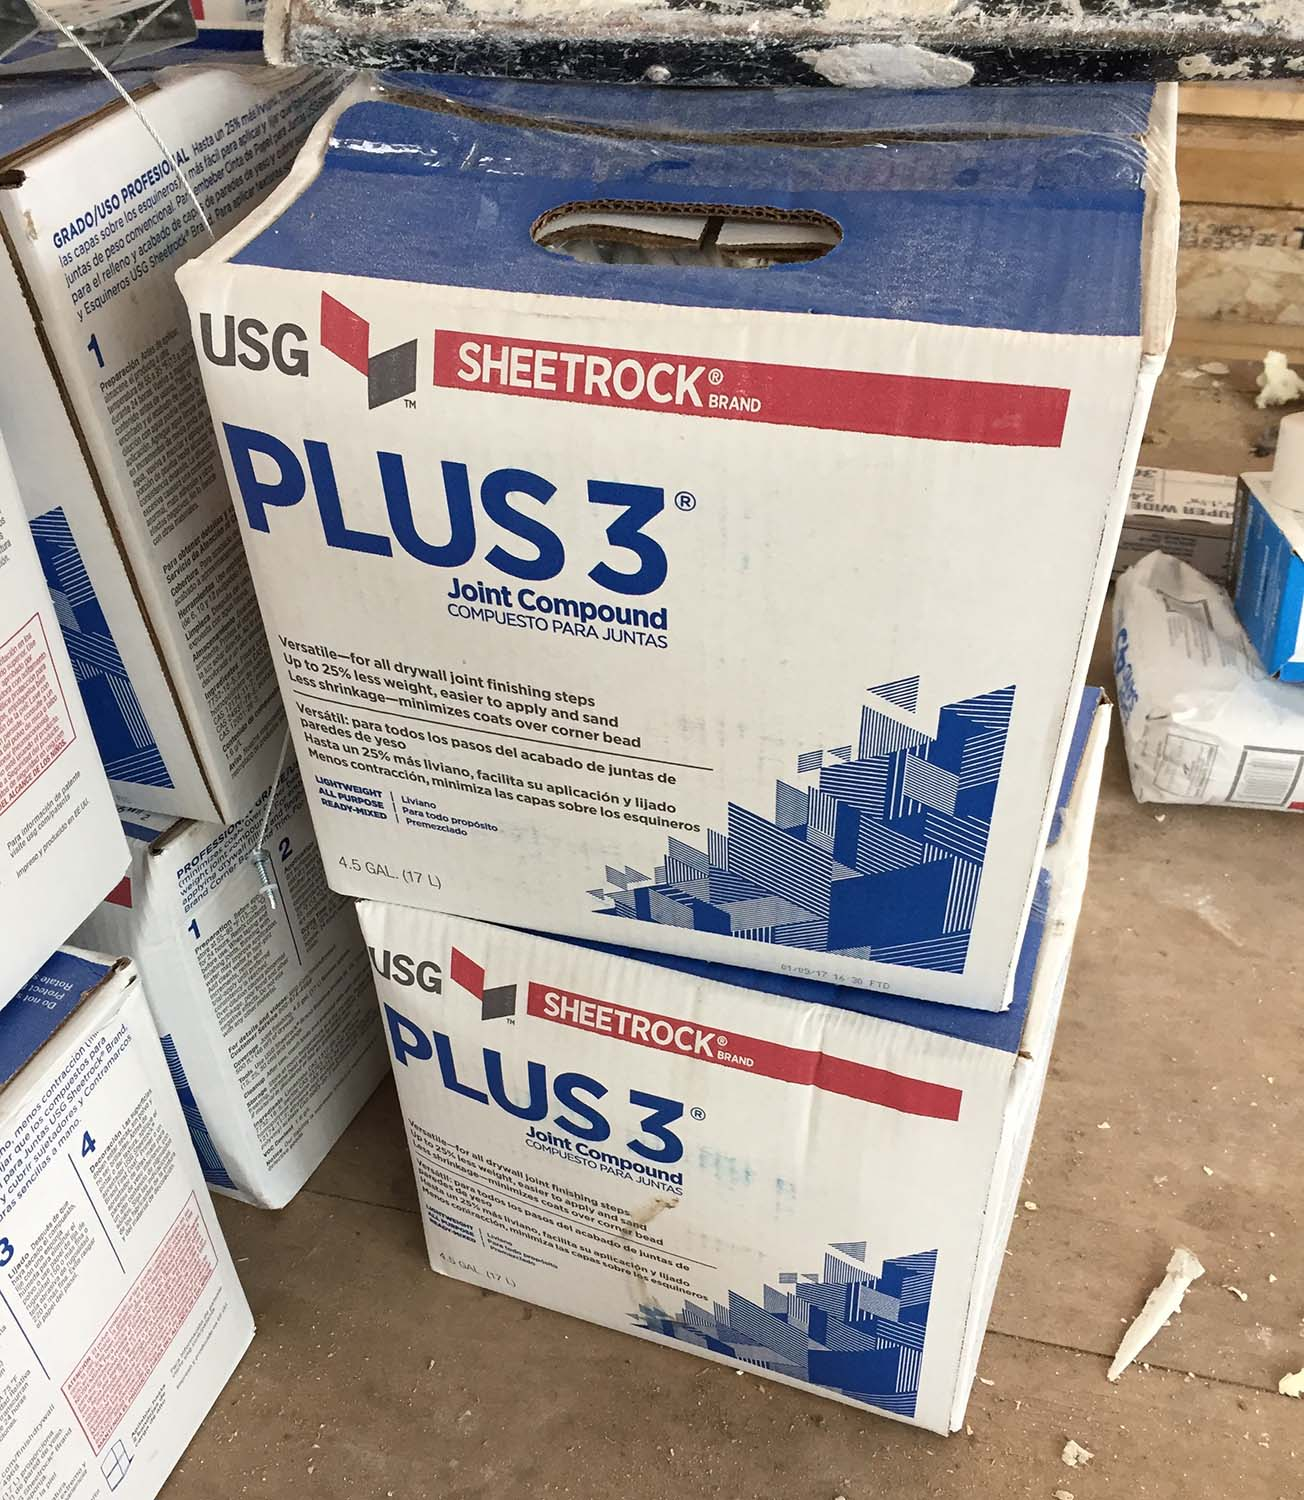 031617 USG Plus 3 joing compound.jpg